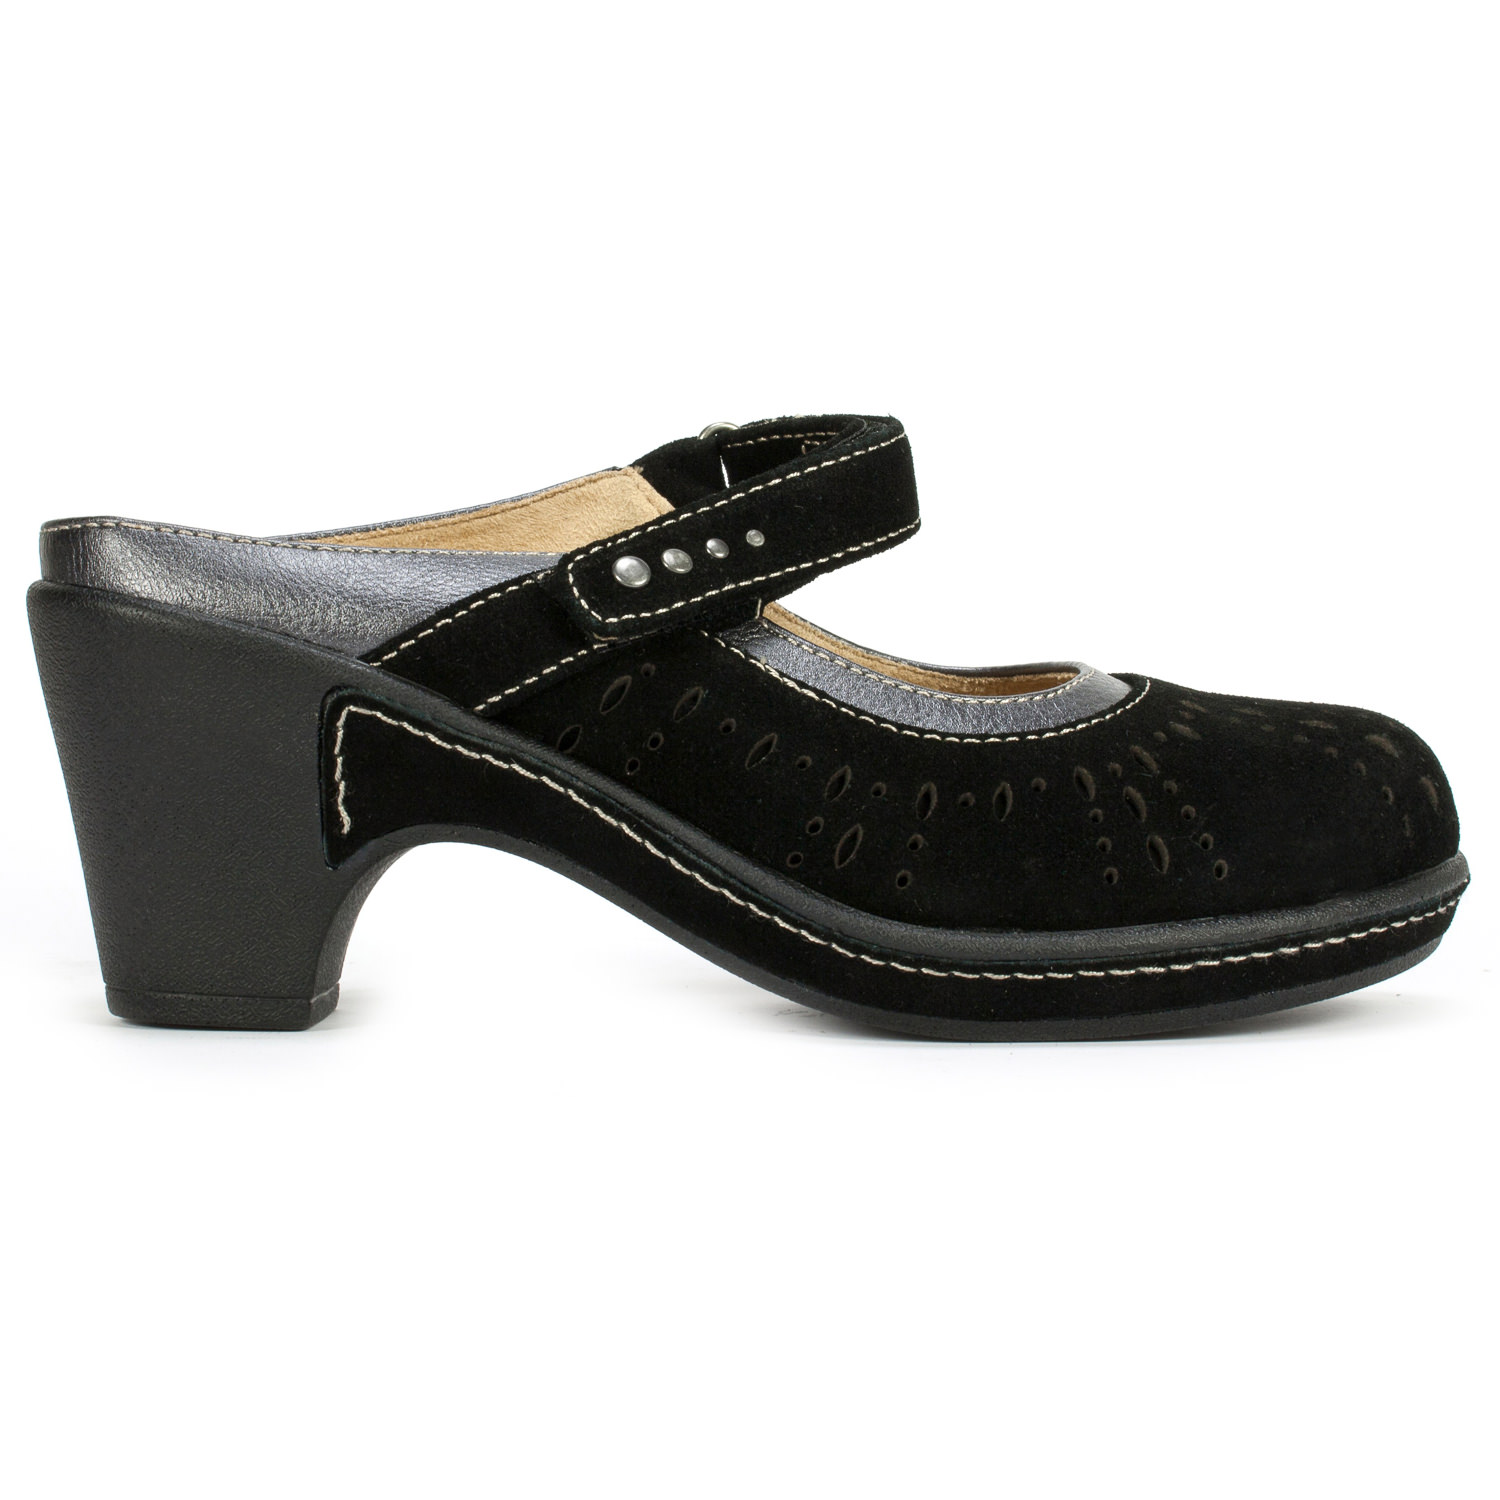 White Mountain Gull Women's Shoe (Black Leather)